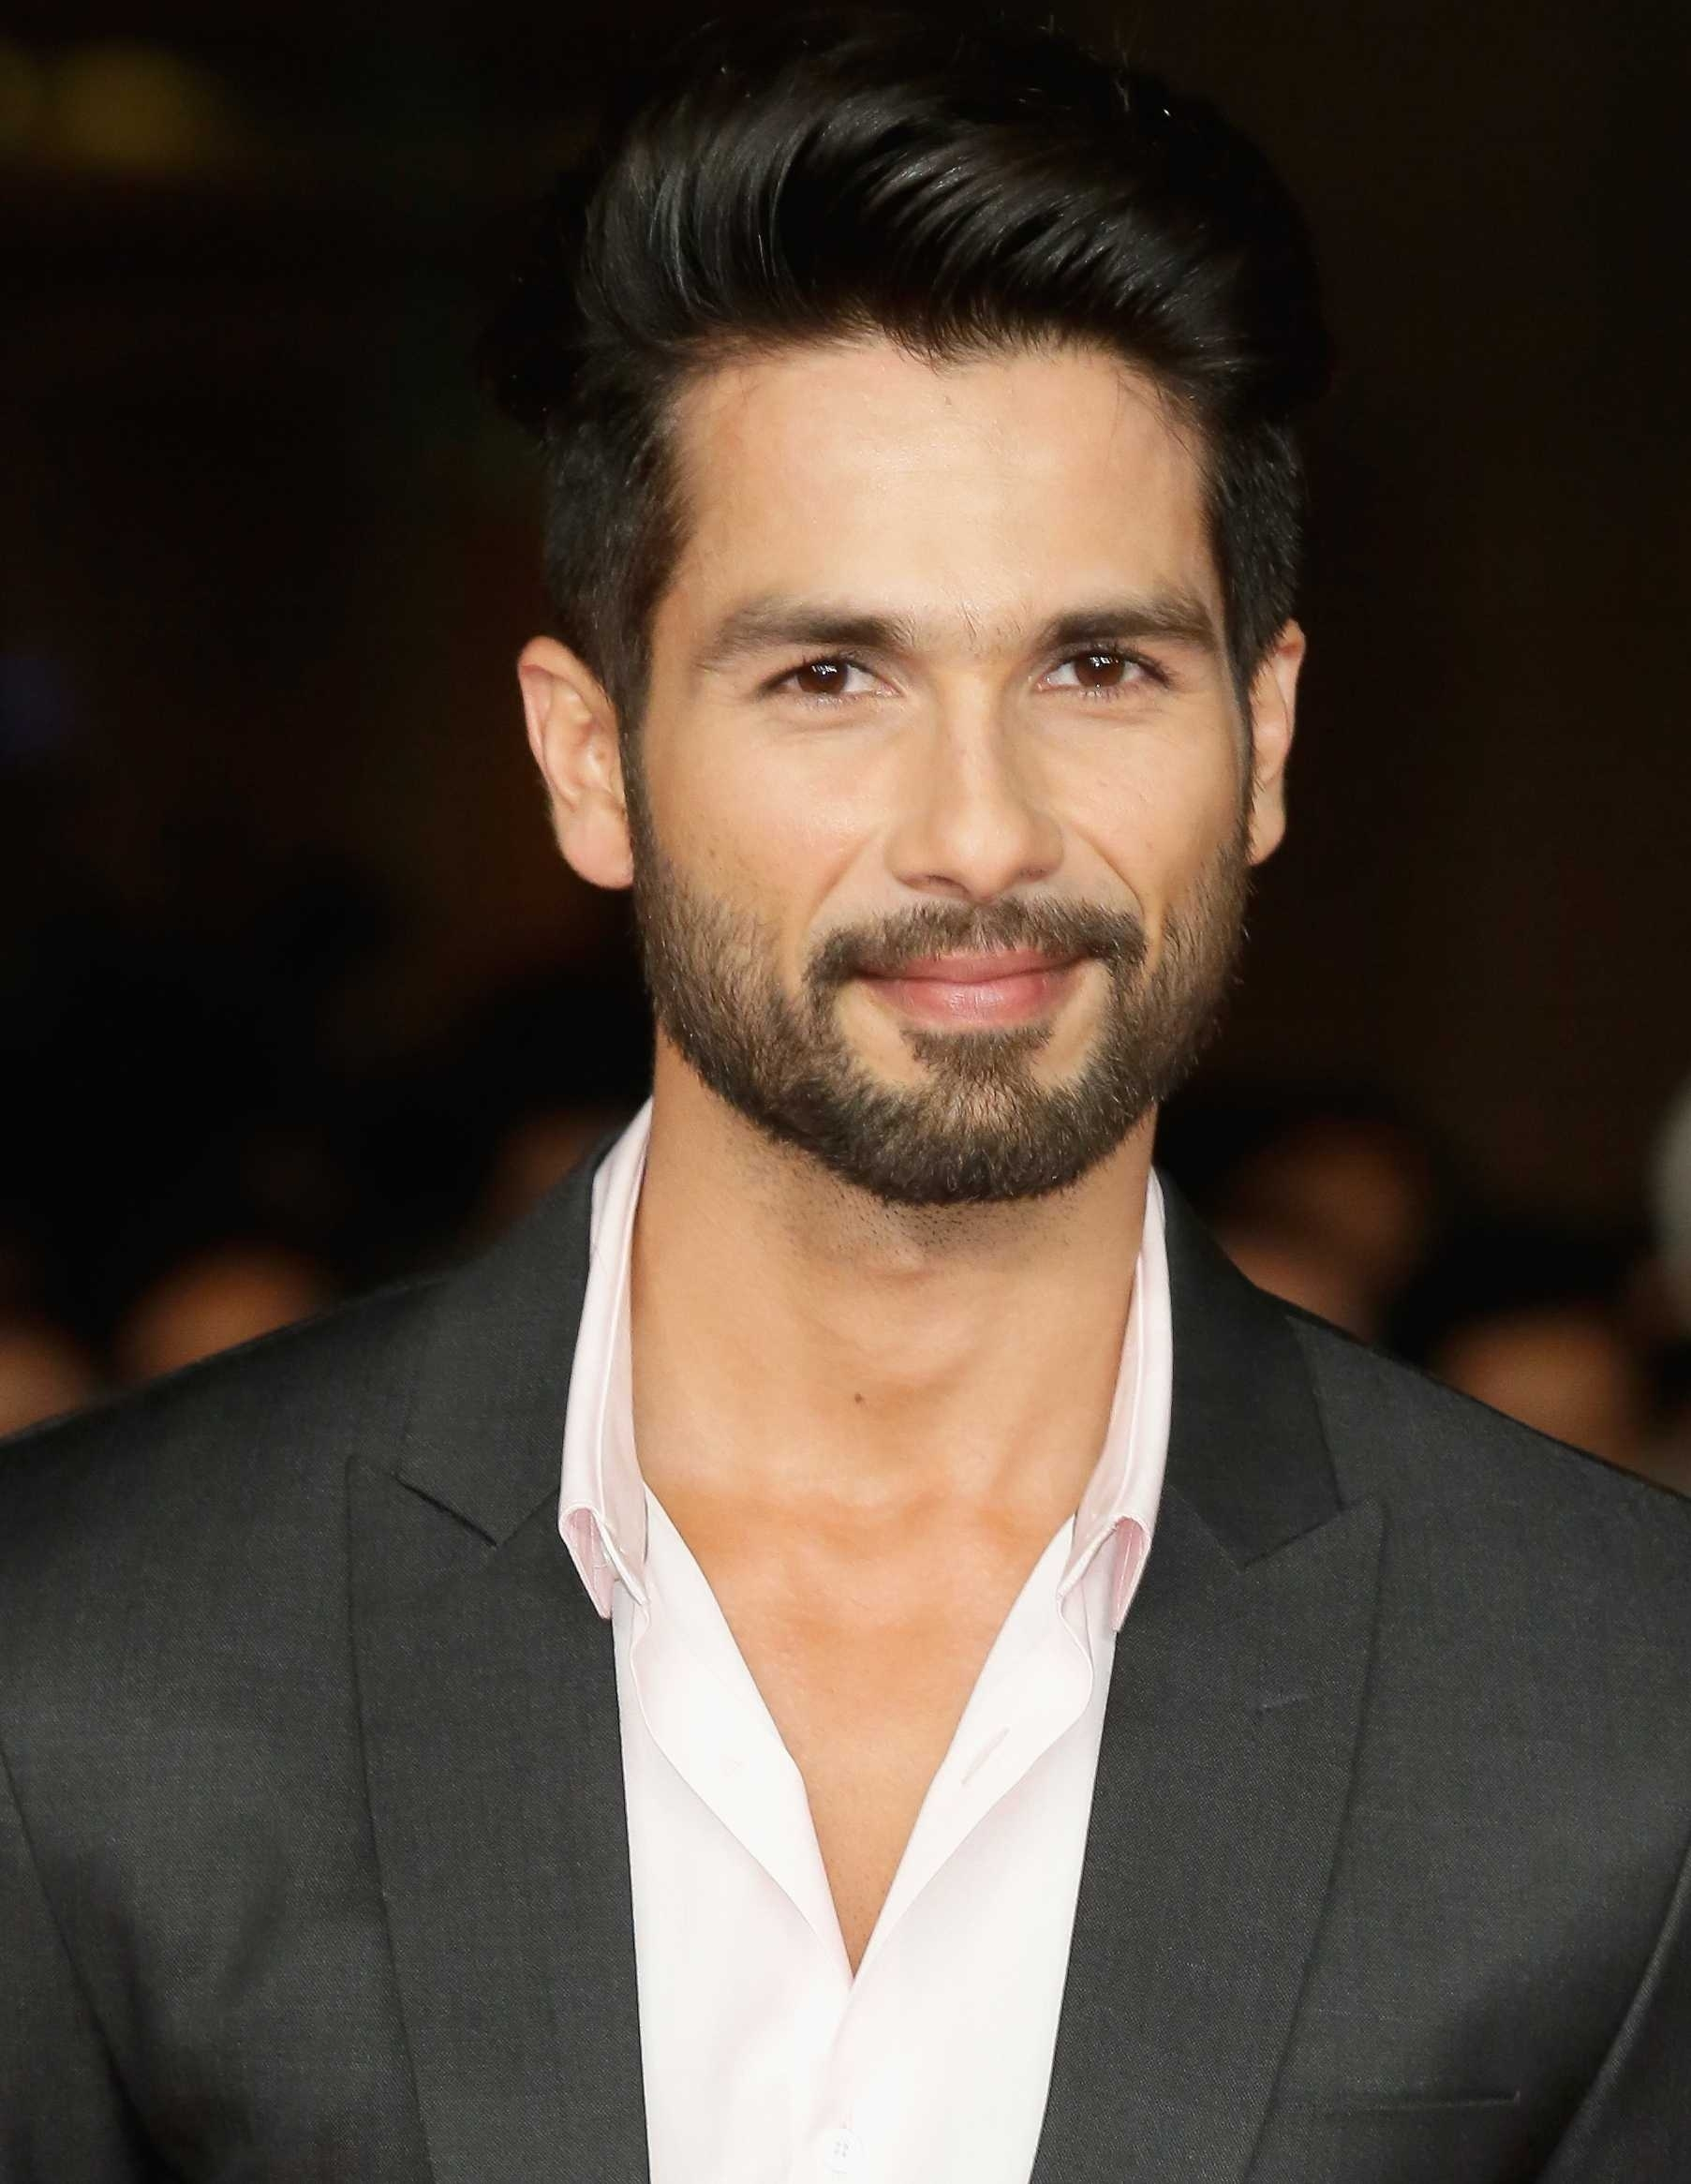 Haircut Styles For Men - How To Choose The Best Hairstyle For Your inside Best Haircut For Round Face Indian Male